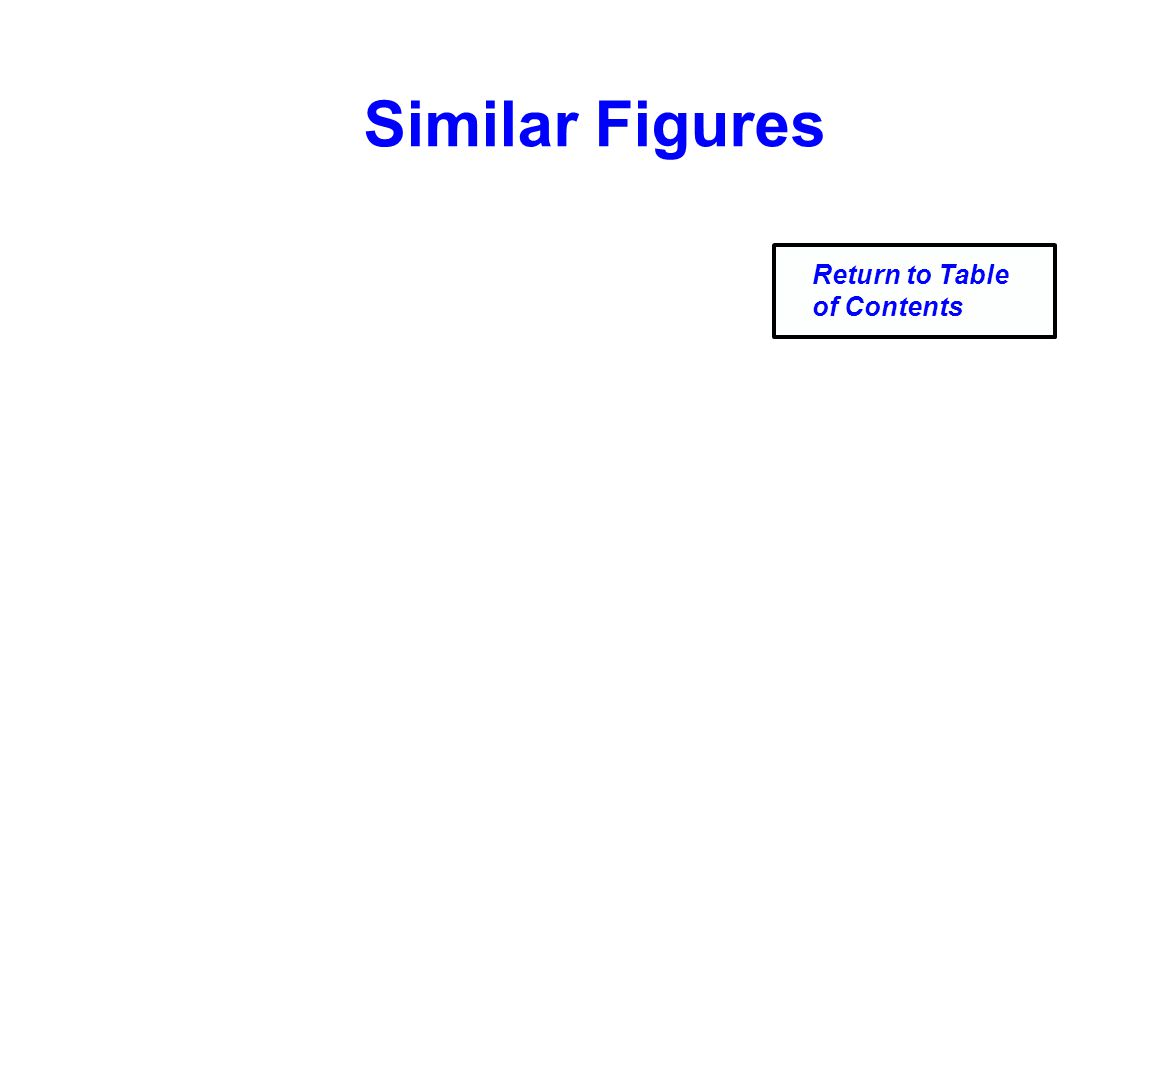 Similar Figures Return to Table of Contents